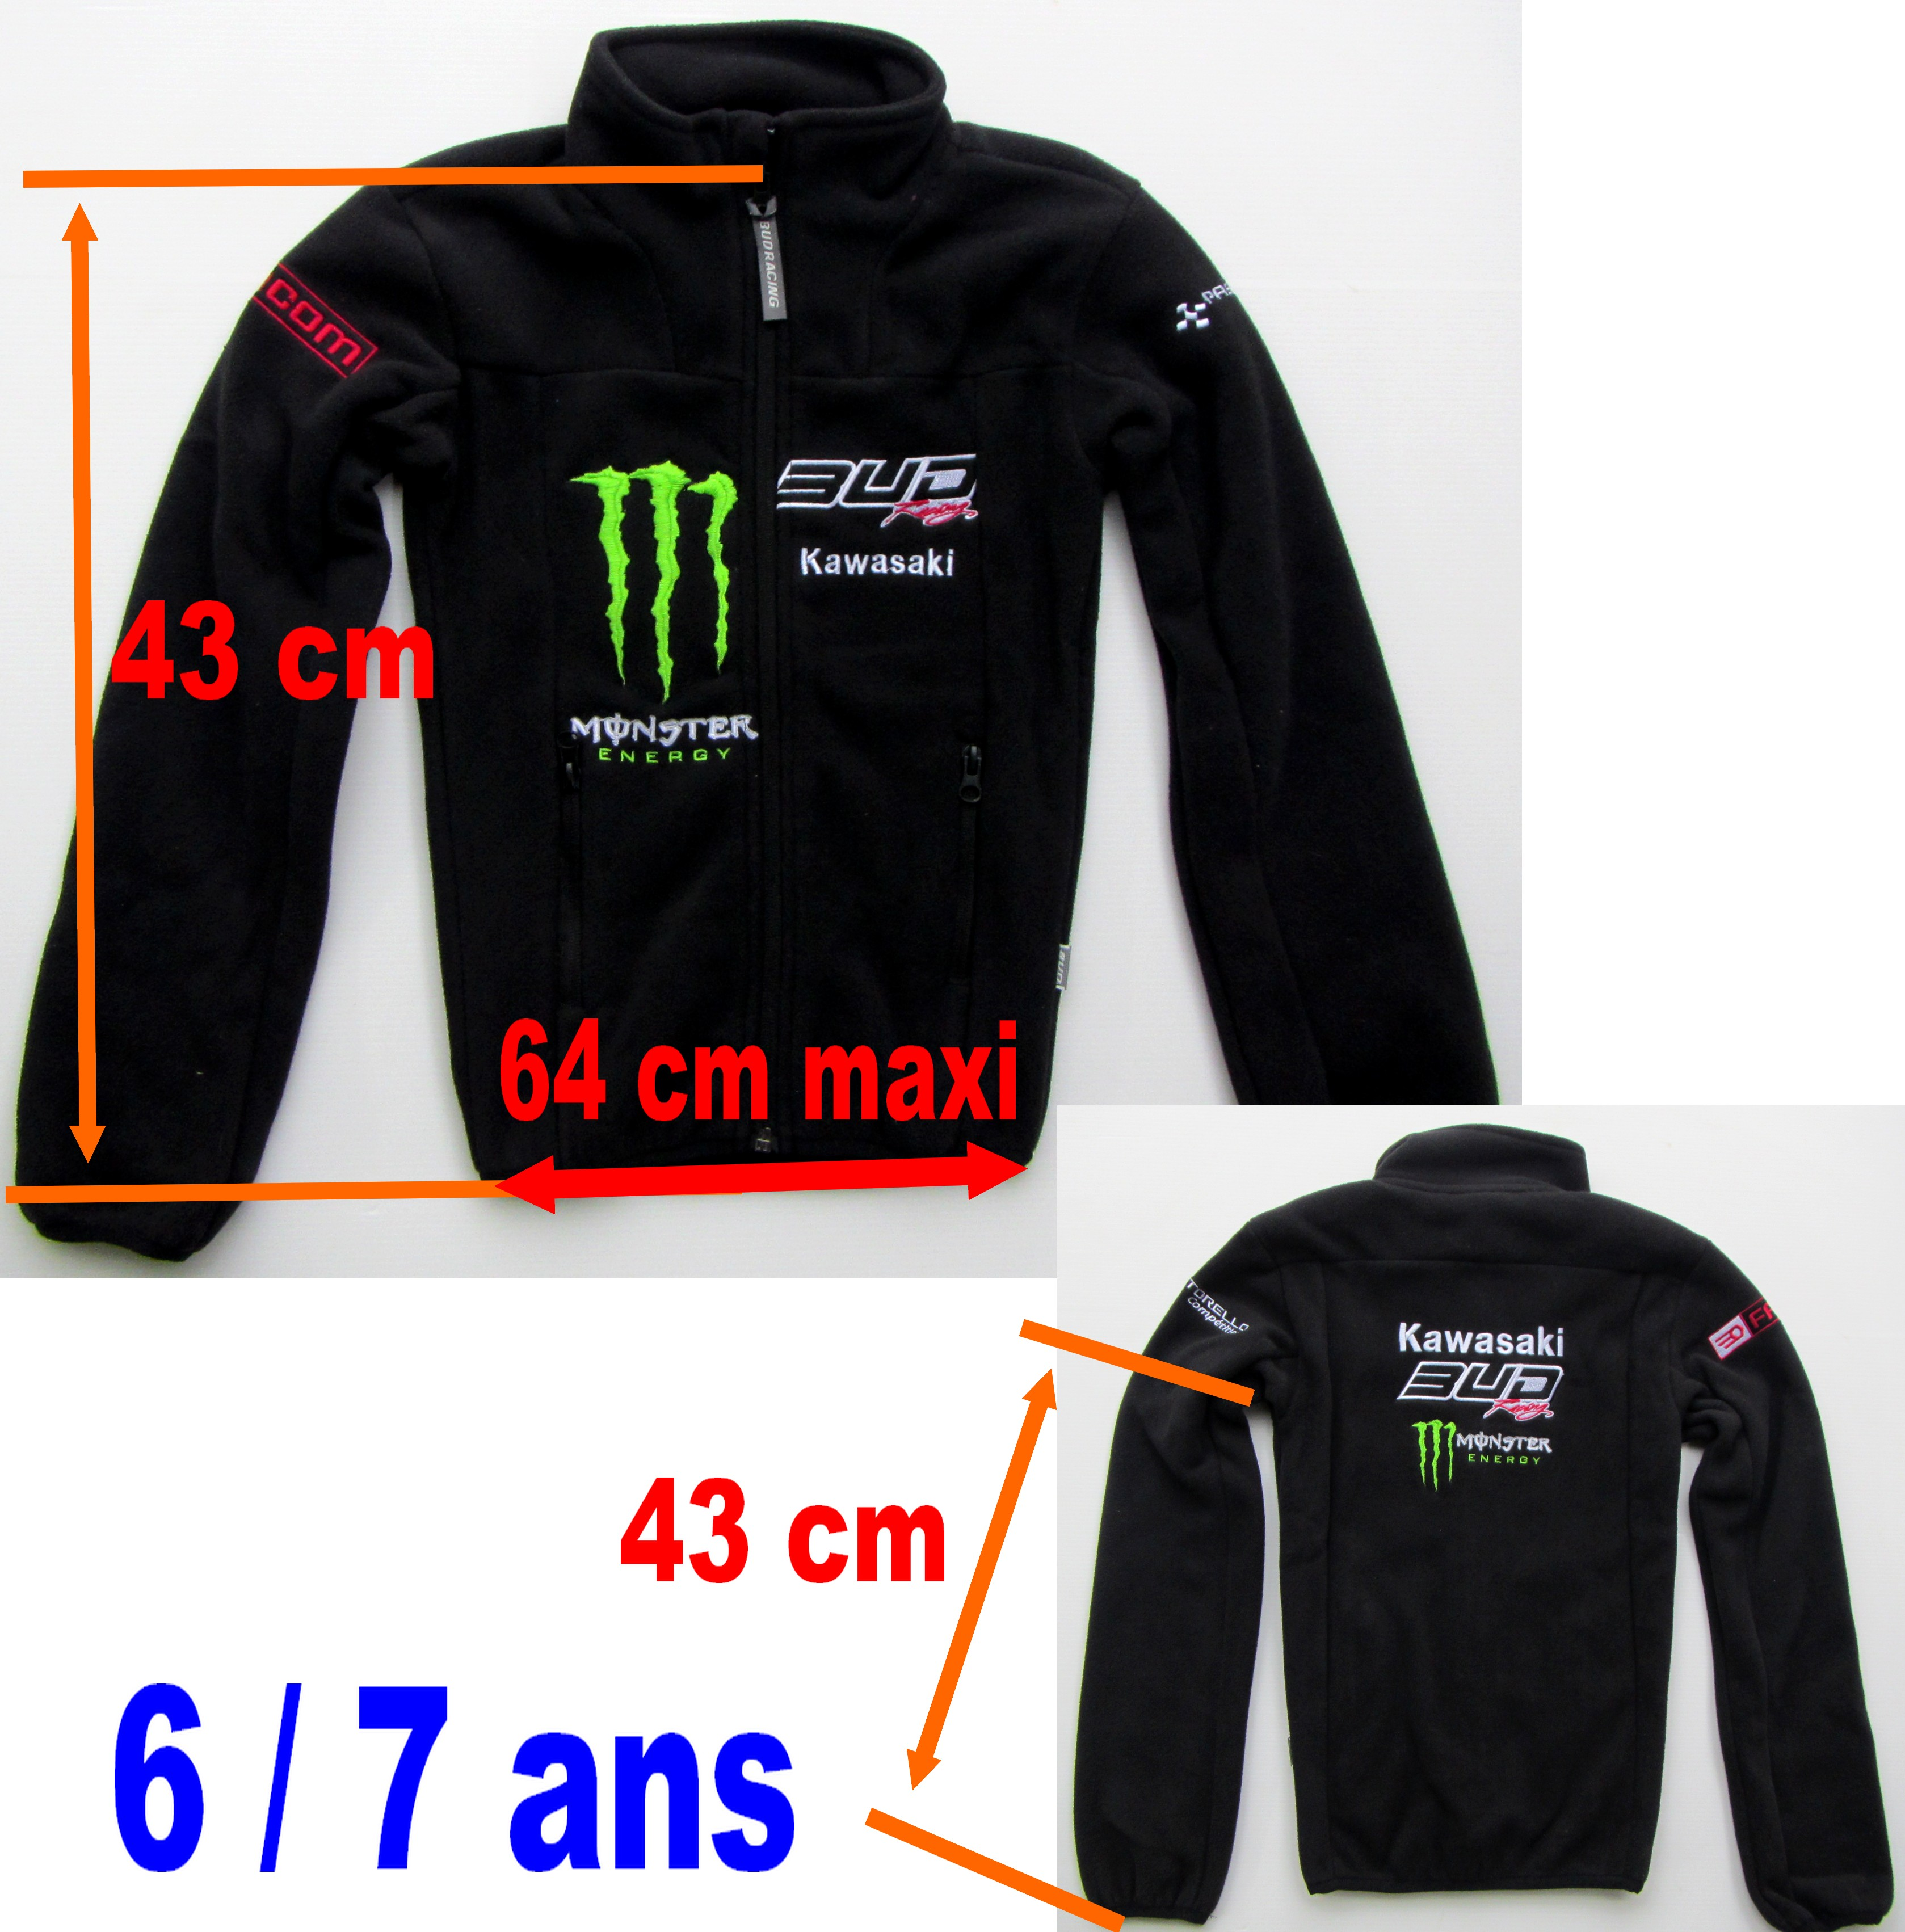 SWEAT VESTE POLAIRE ENFANT MONSTER TEAM BUD BUD ENFANT 6 / 7 ans